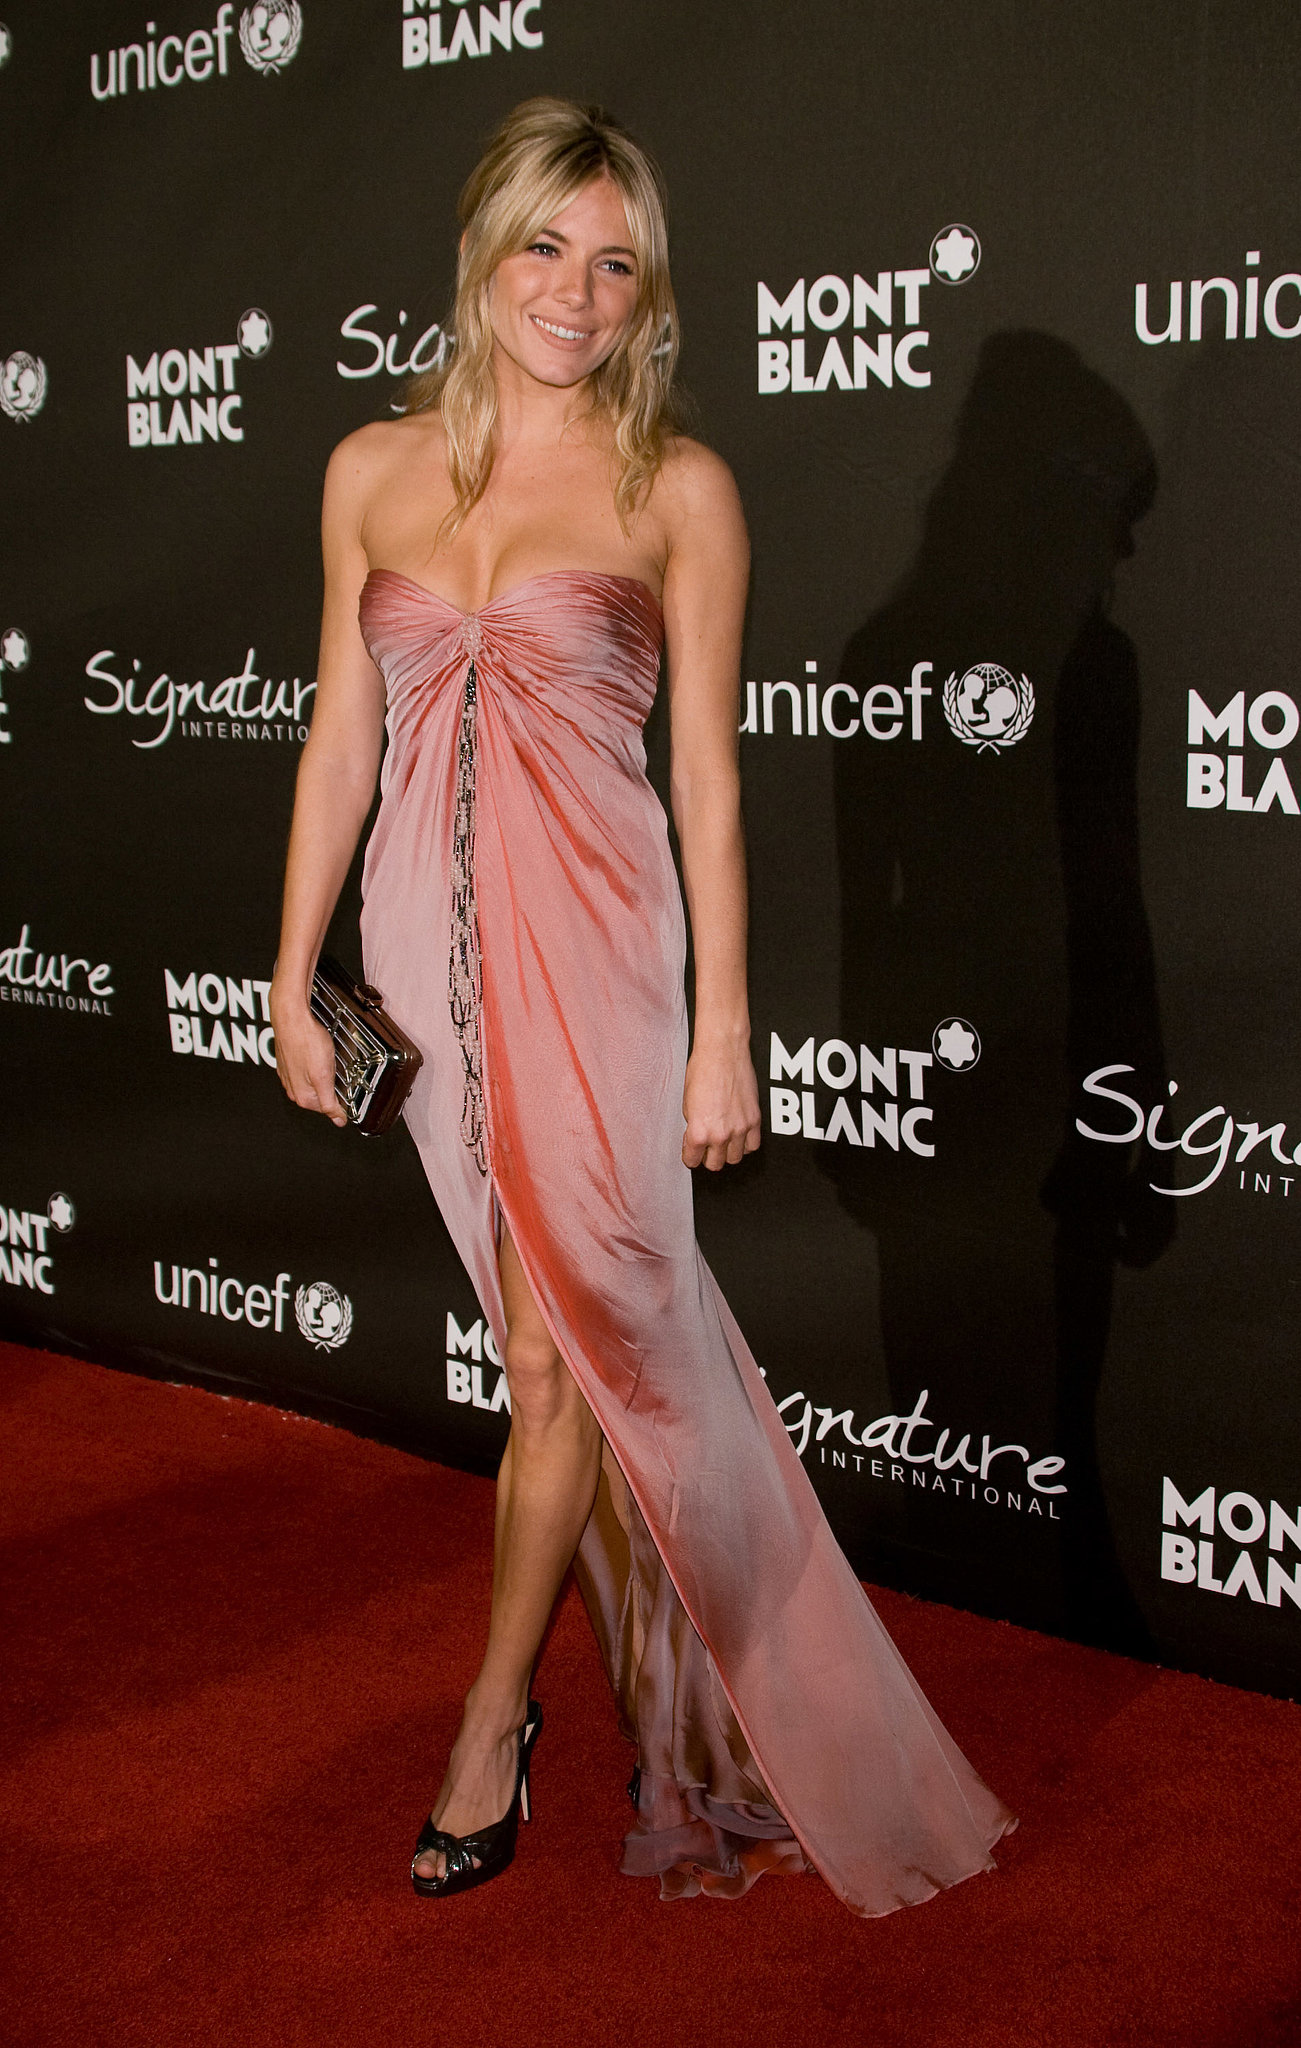 The British beauty was positively glowing at a charity gala in 2009.